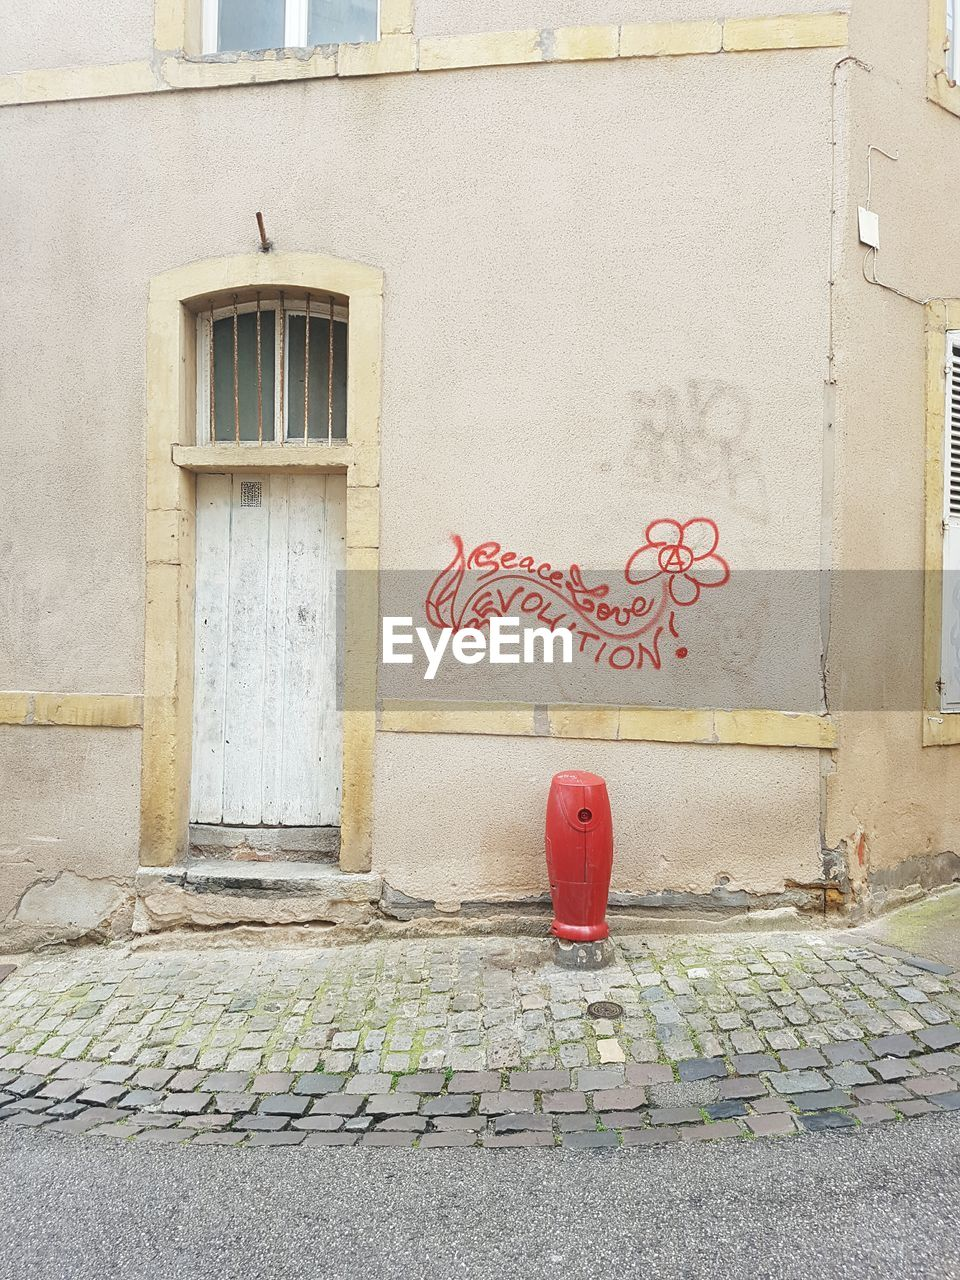 architecture, built structure, door, building exterior, graffiti, communication, day, outdoors, text, no people, red